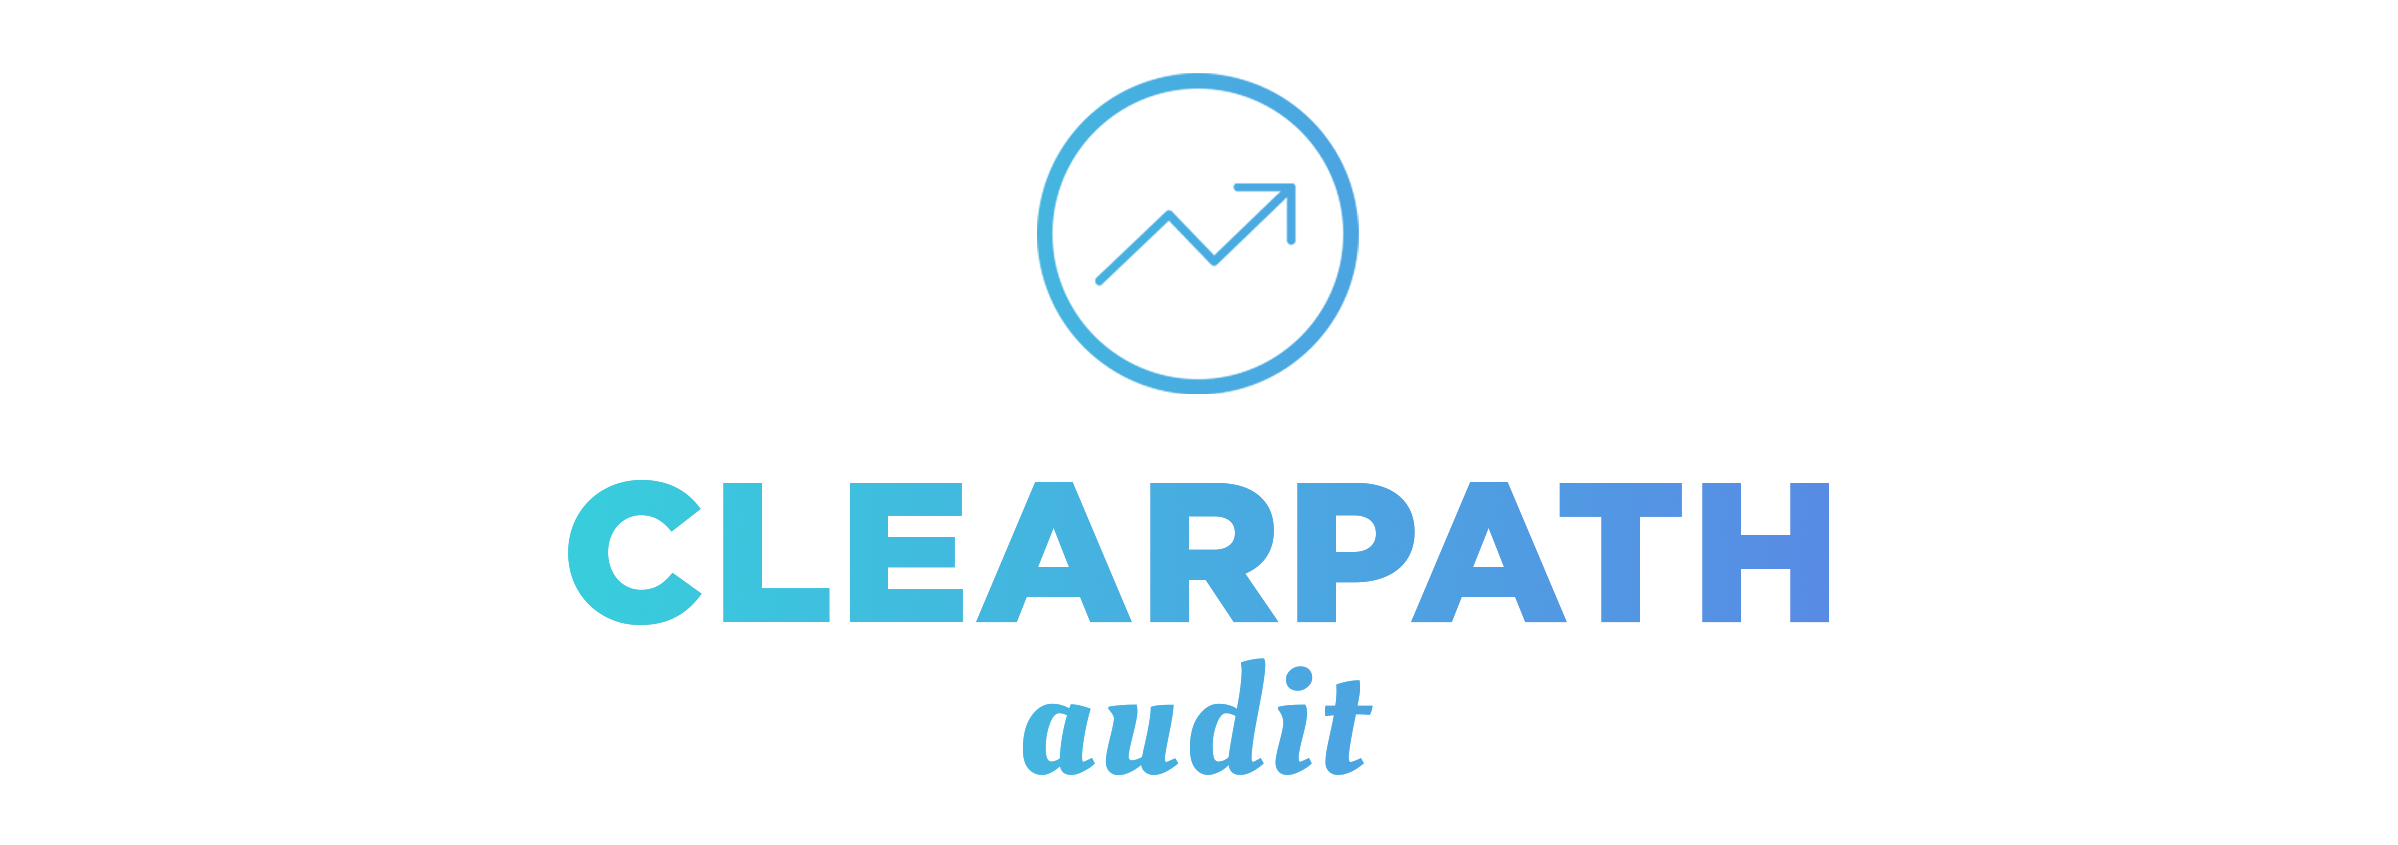 Clearpath Communications Audit